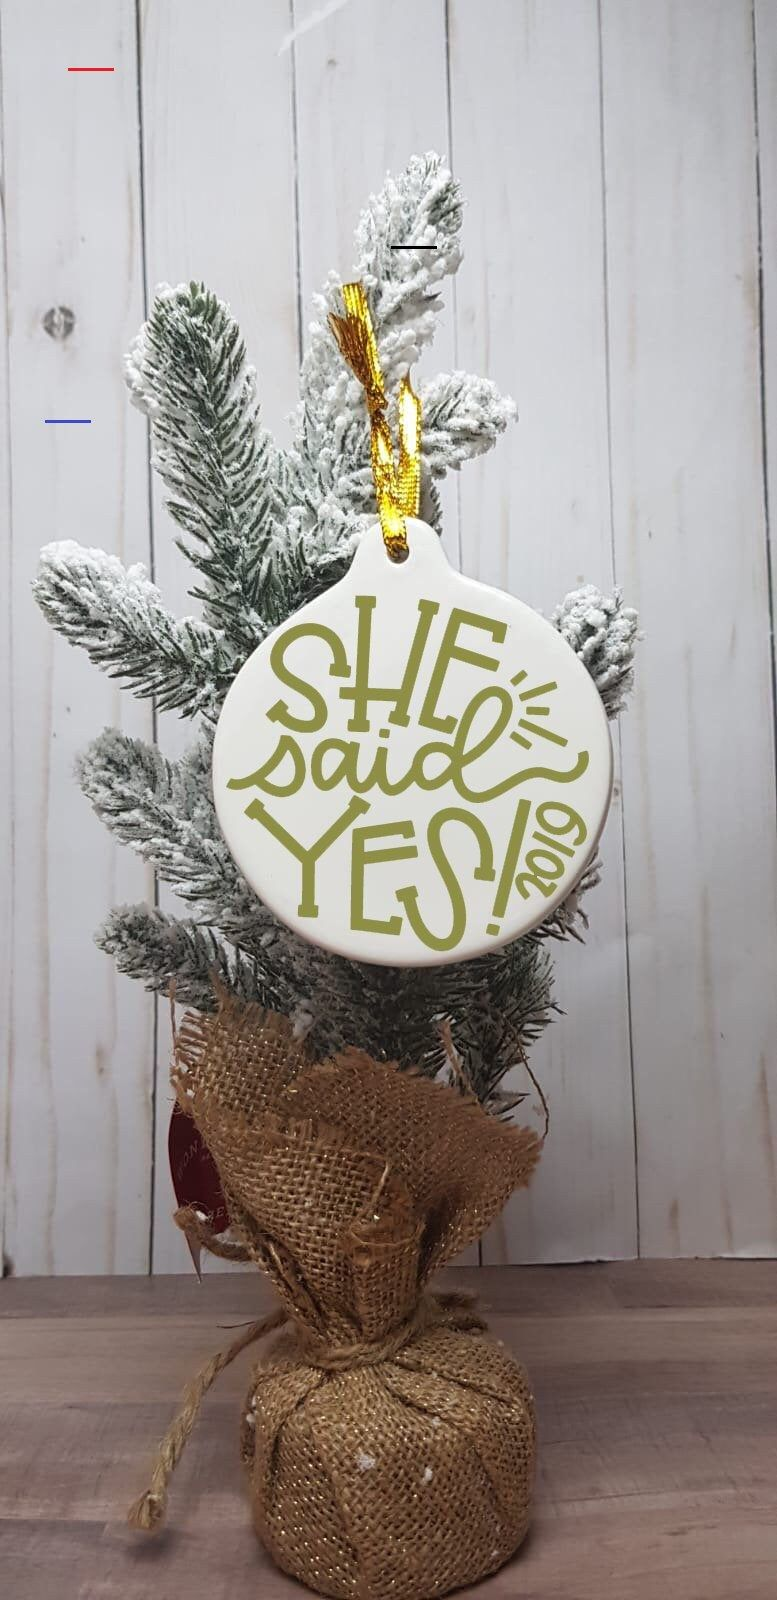 She Said Yes 2019 Christmas Ornament, Christmas Engagement